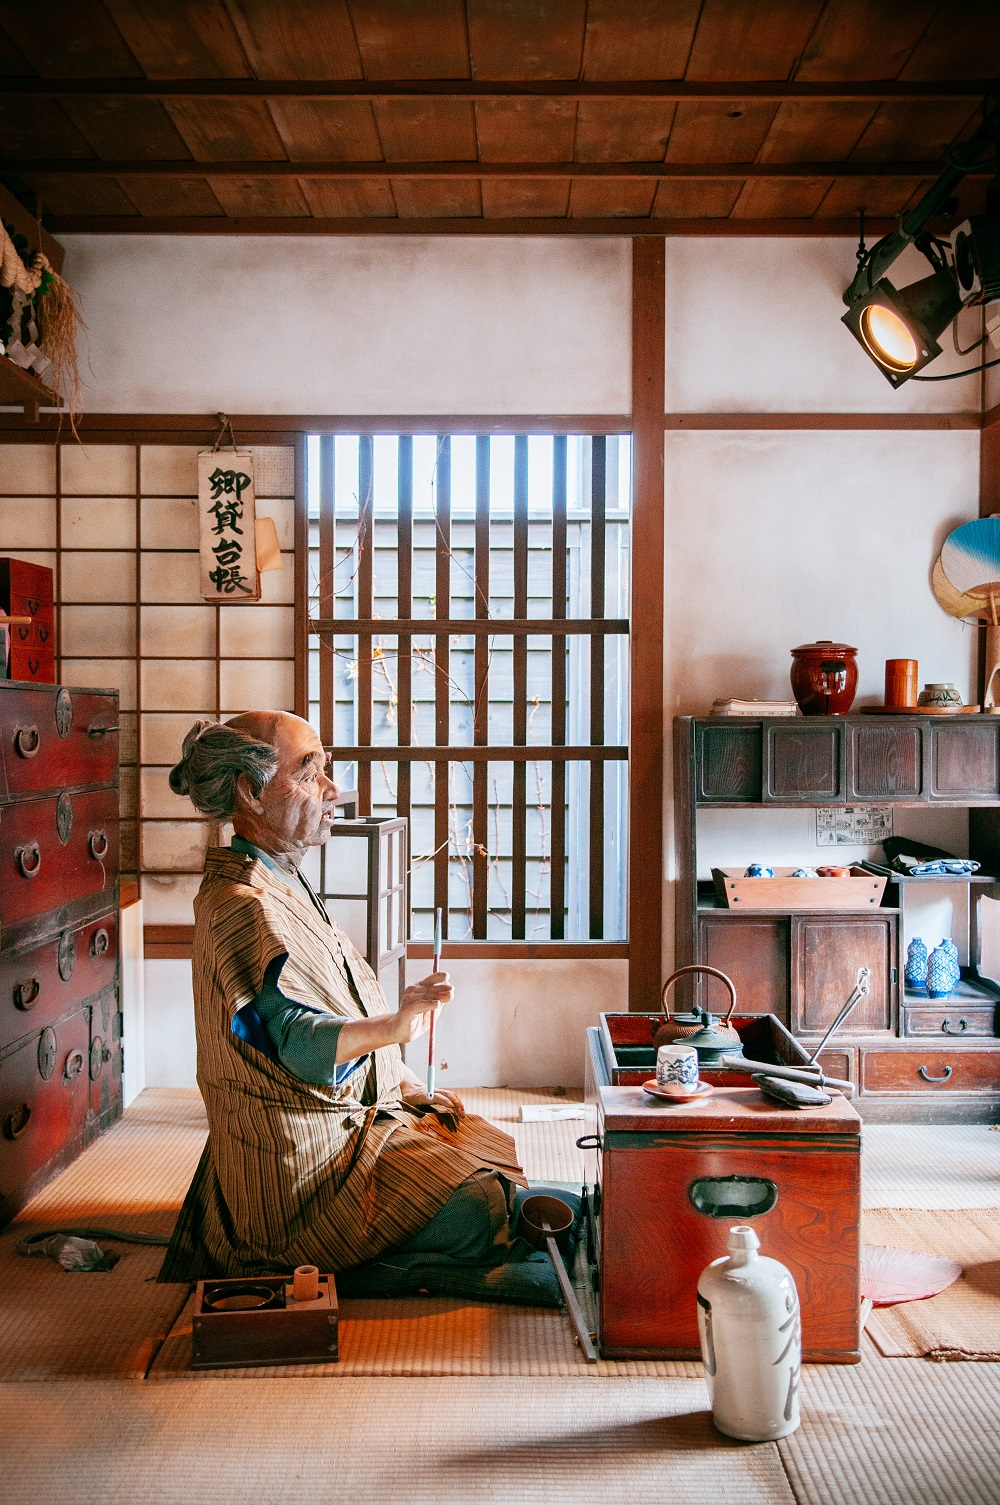 Sample of Japanese room at Noboribetsu Date Jidaimura old architecture Edo Historic Village Hokkaido, Japan.